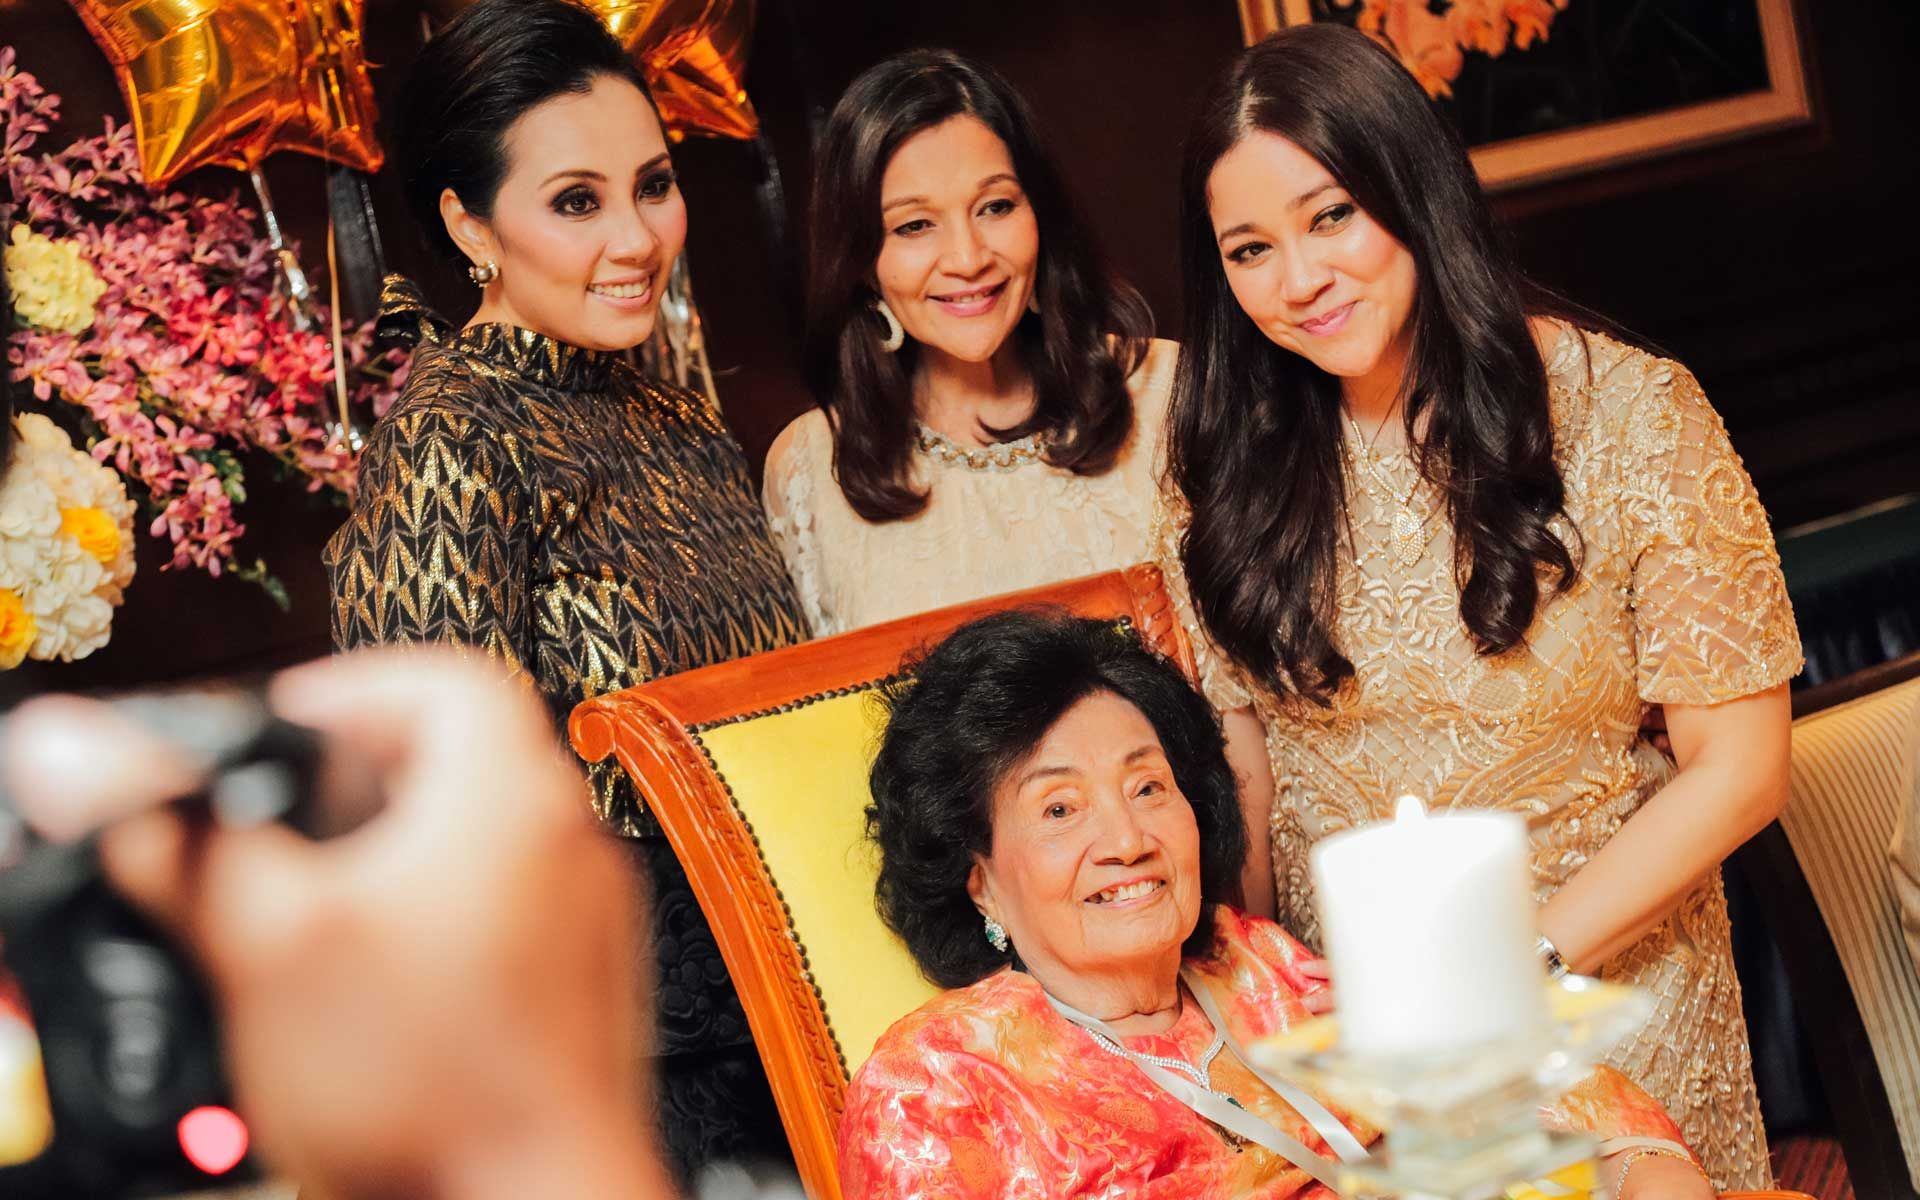 All smiles as family members gathered with the birthday girl, Tuanku Najihah Tunku Besar Burhanuddin, for a group photo